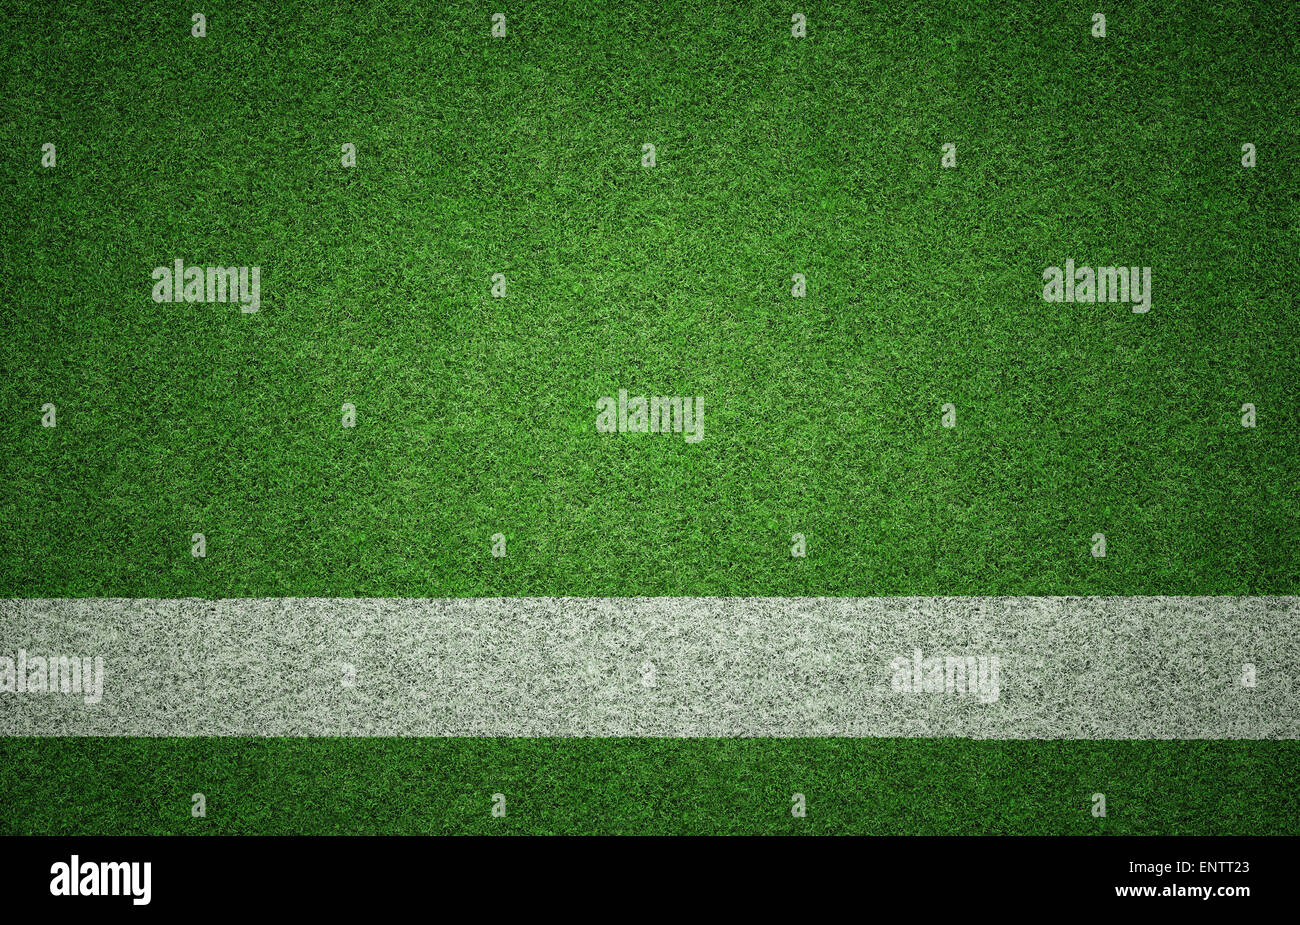 White painted line on green grass background texture with grunge lighting and lots of copy space. Perfect for sport - Stock Image